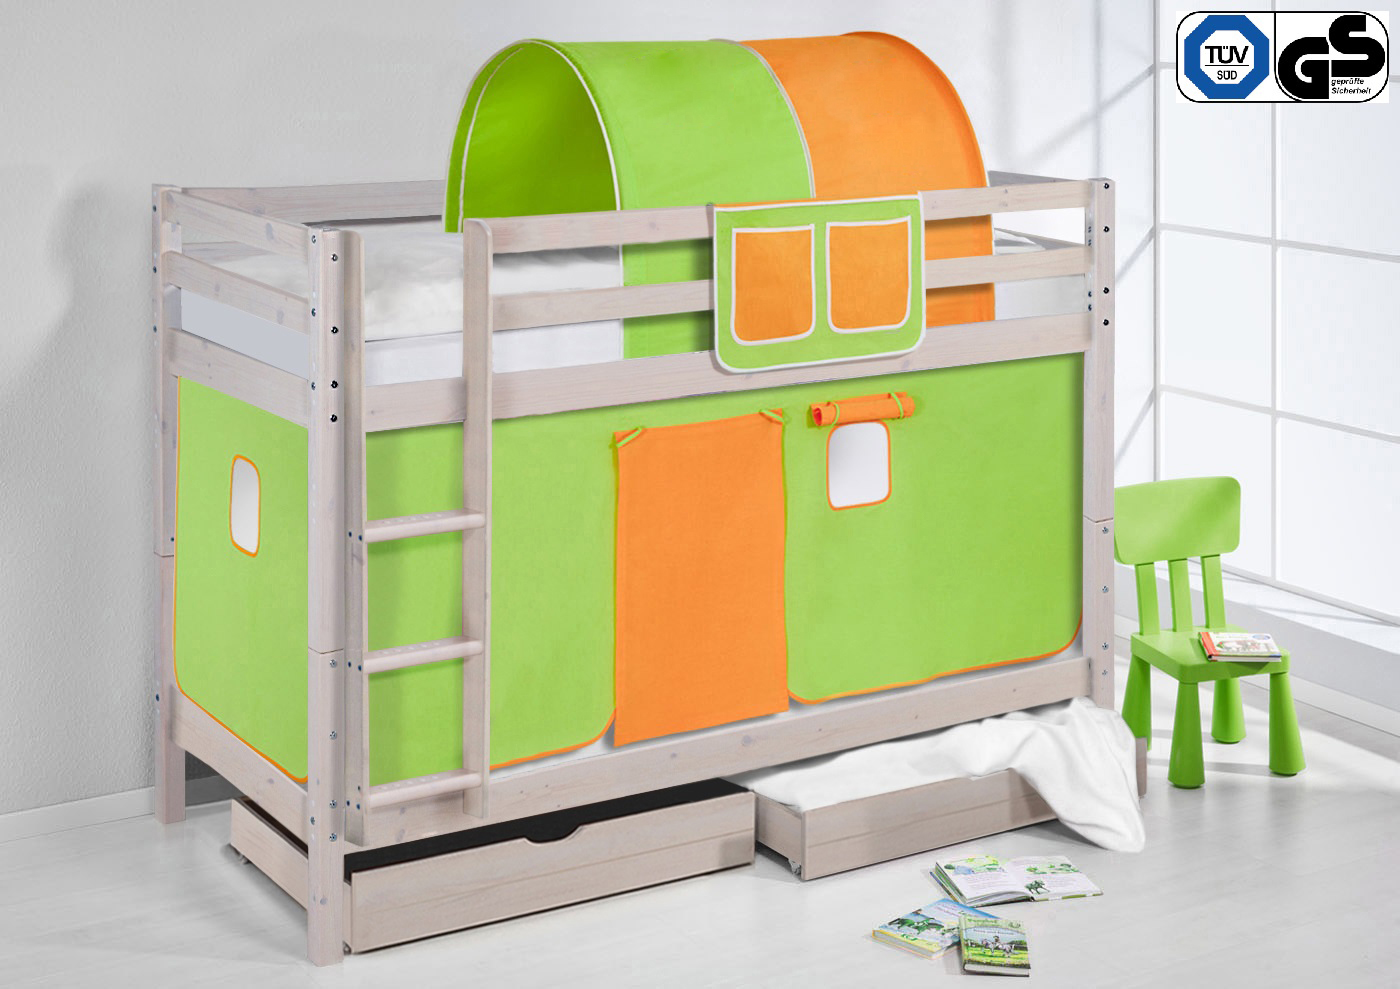 etagenbett hochbett kinder bett aus kiefer nele wei vorhang t v gs gepr ft ebay. Black Bedroom Furniture Sets. Home Design Ideas